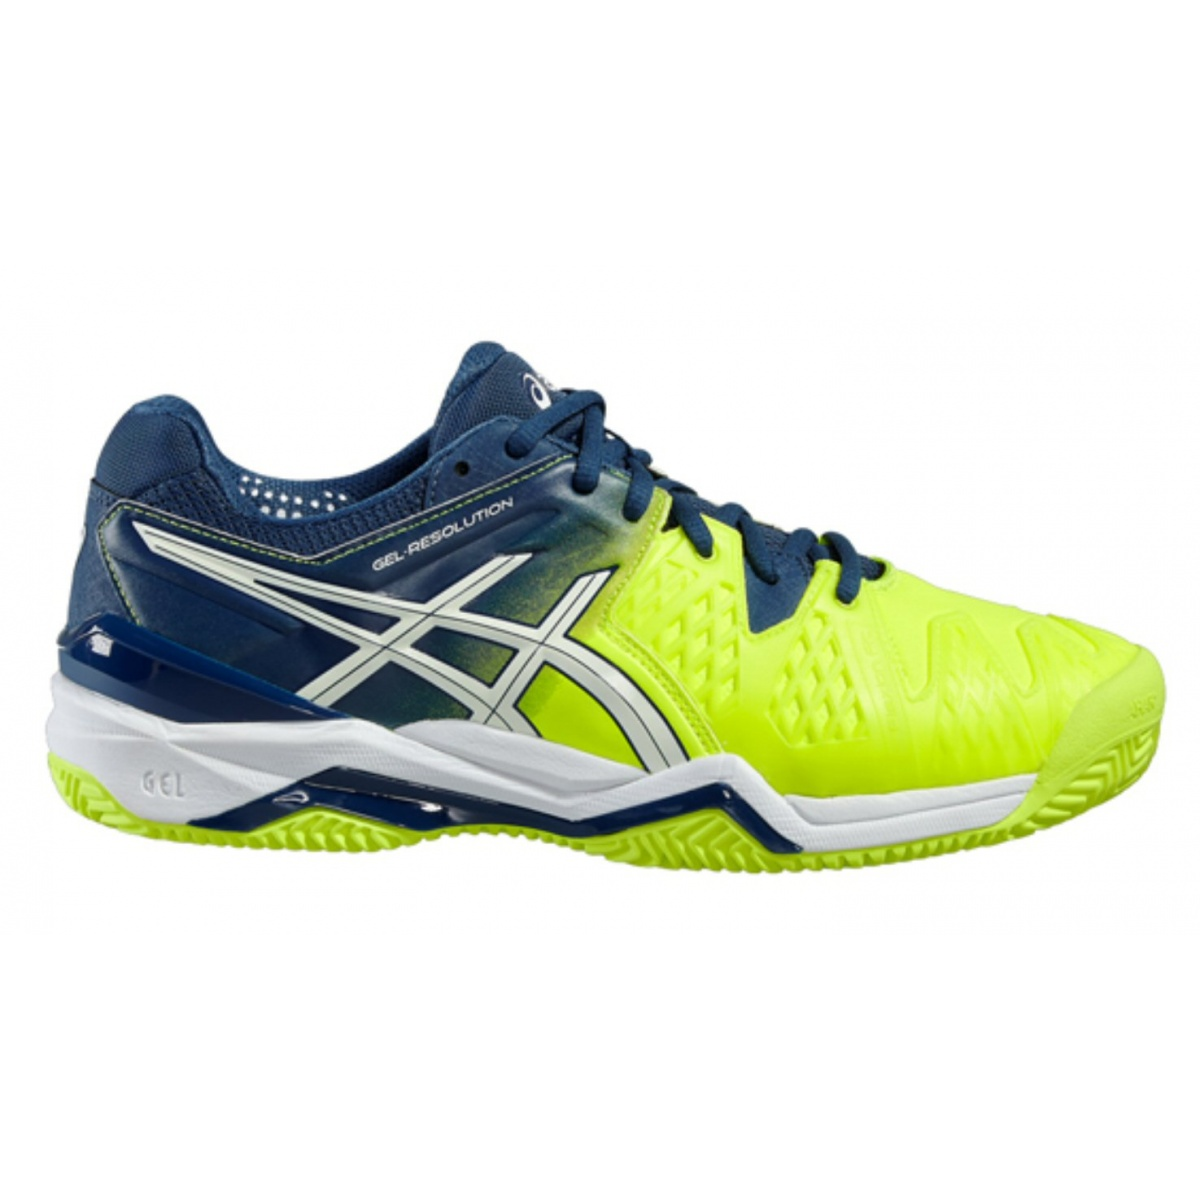 Asics Gel Resolution 6 Clay 2016 gelb/blau Tennisschuhe Herren